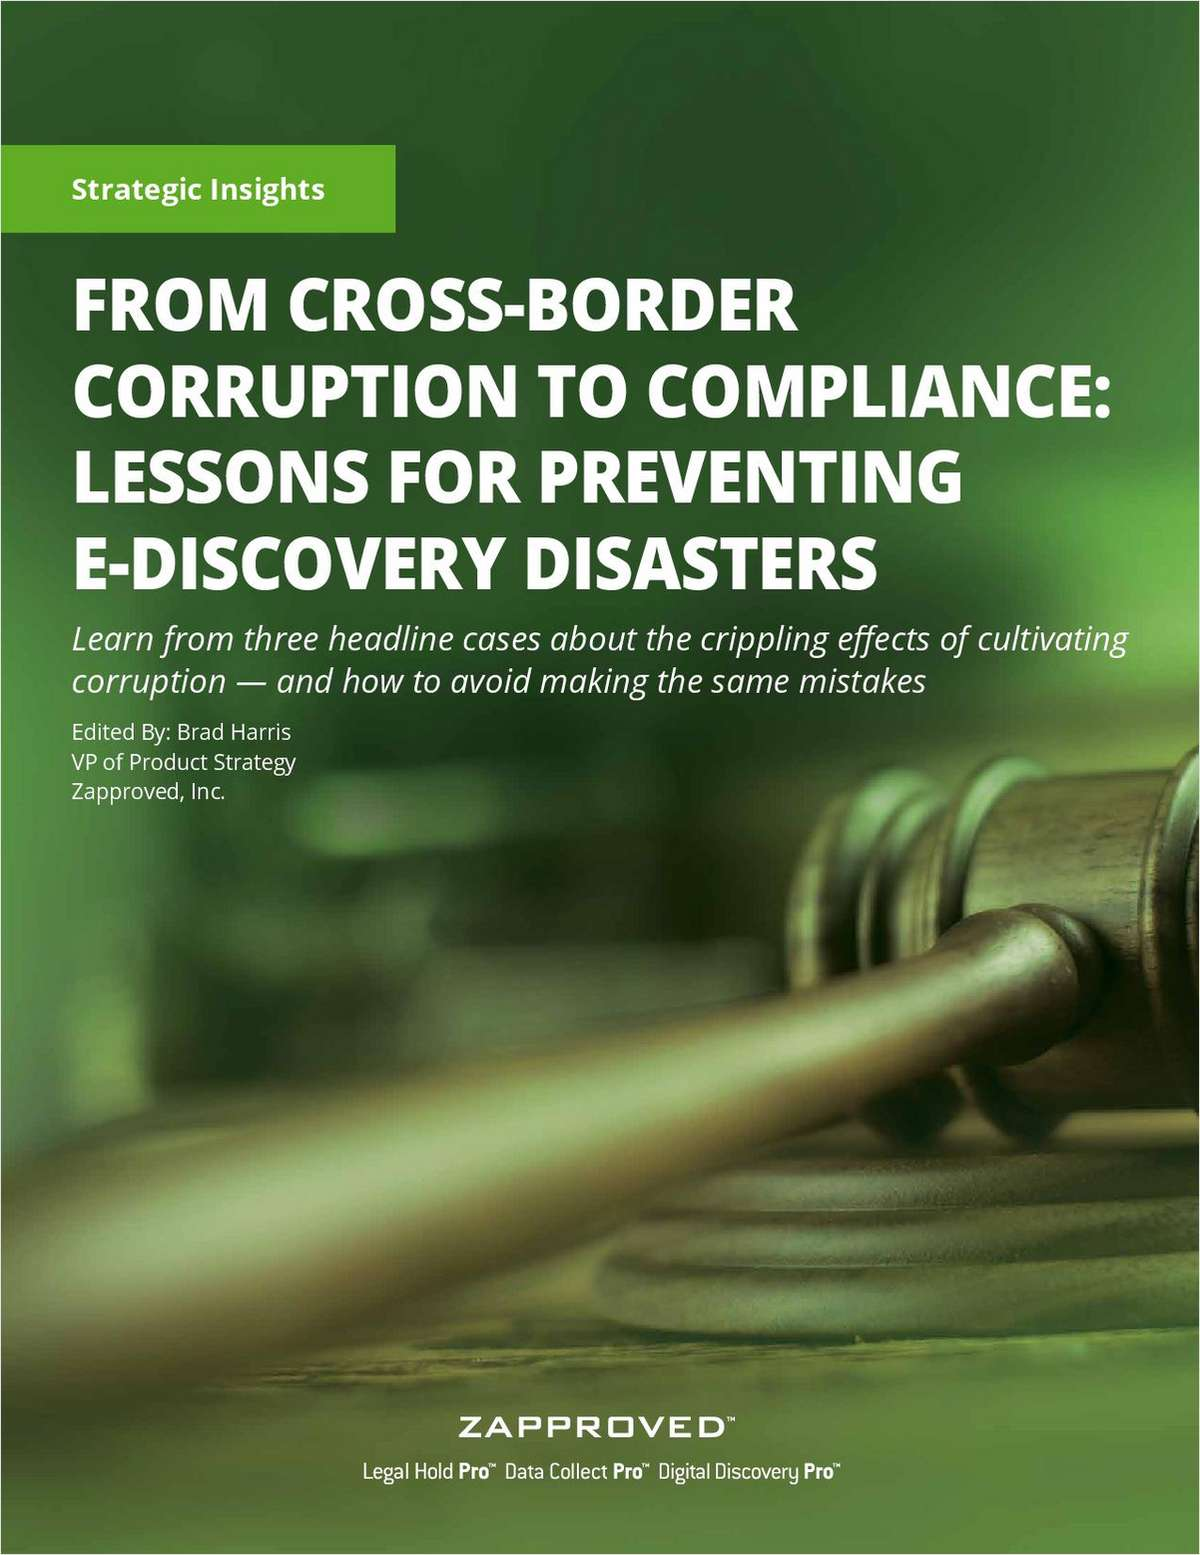 From Cross Border Corruption to Compliance: Lessons for Preventing E-Discovery Disasters